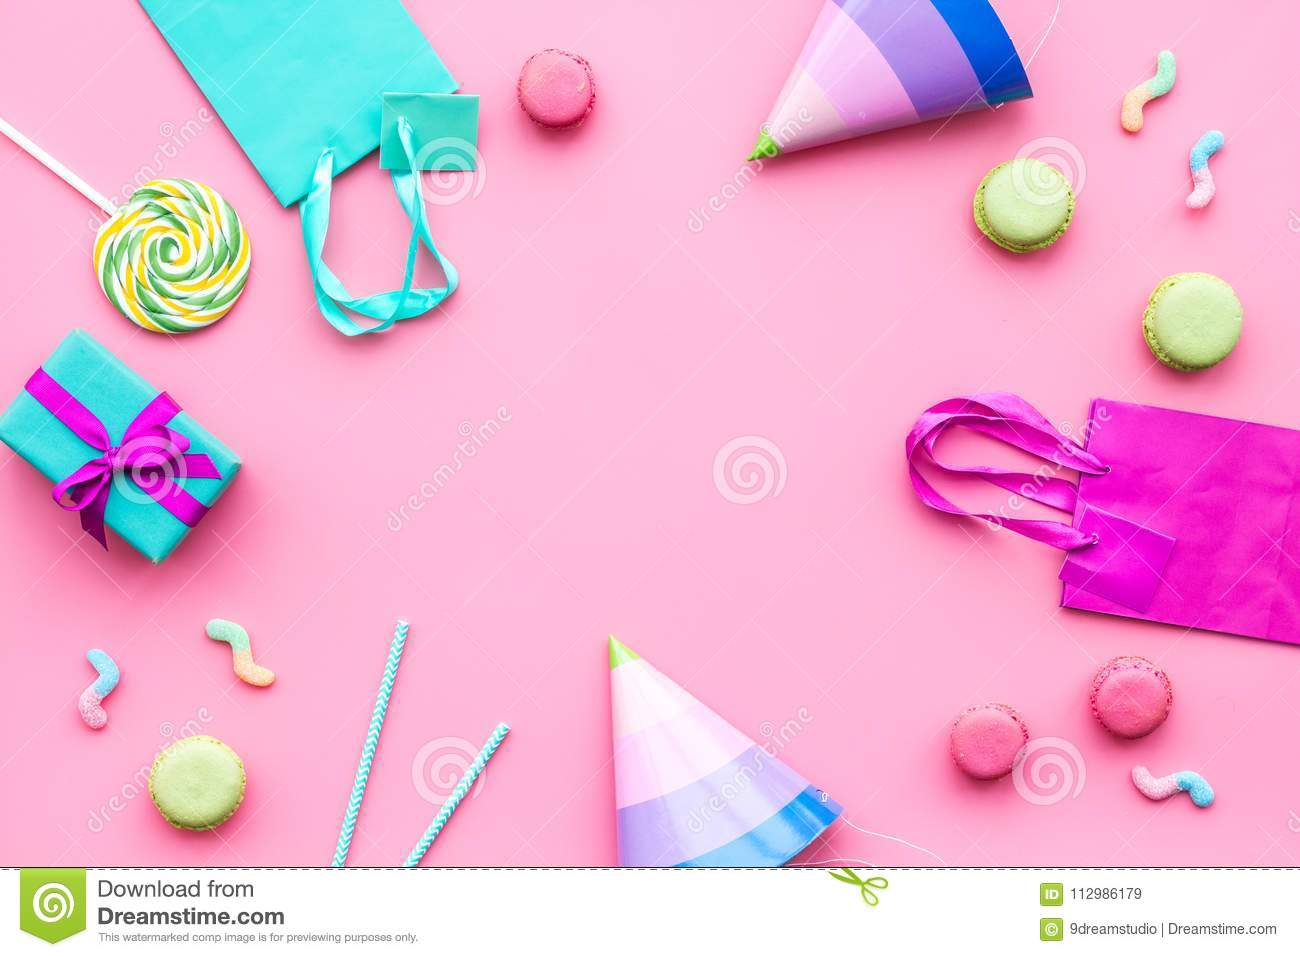 Birthday party accessories. Party hat, sweets, paper bag for gift on pink background top view copy space mockup